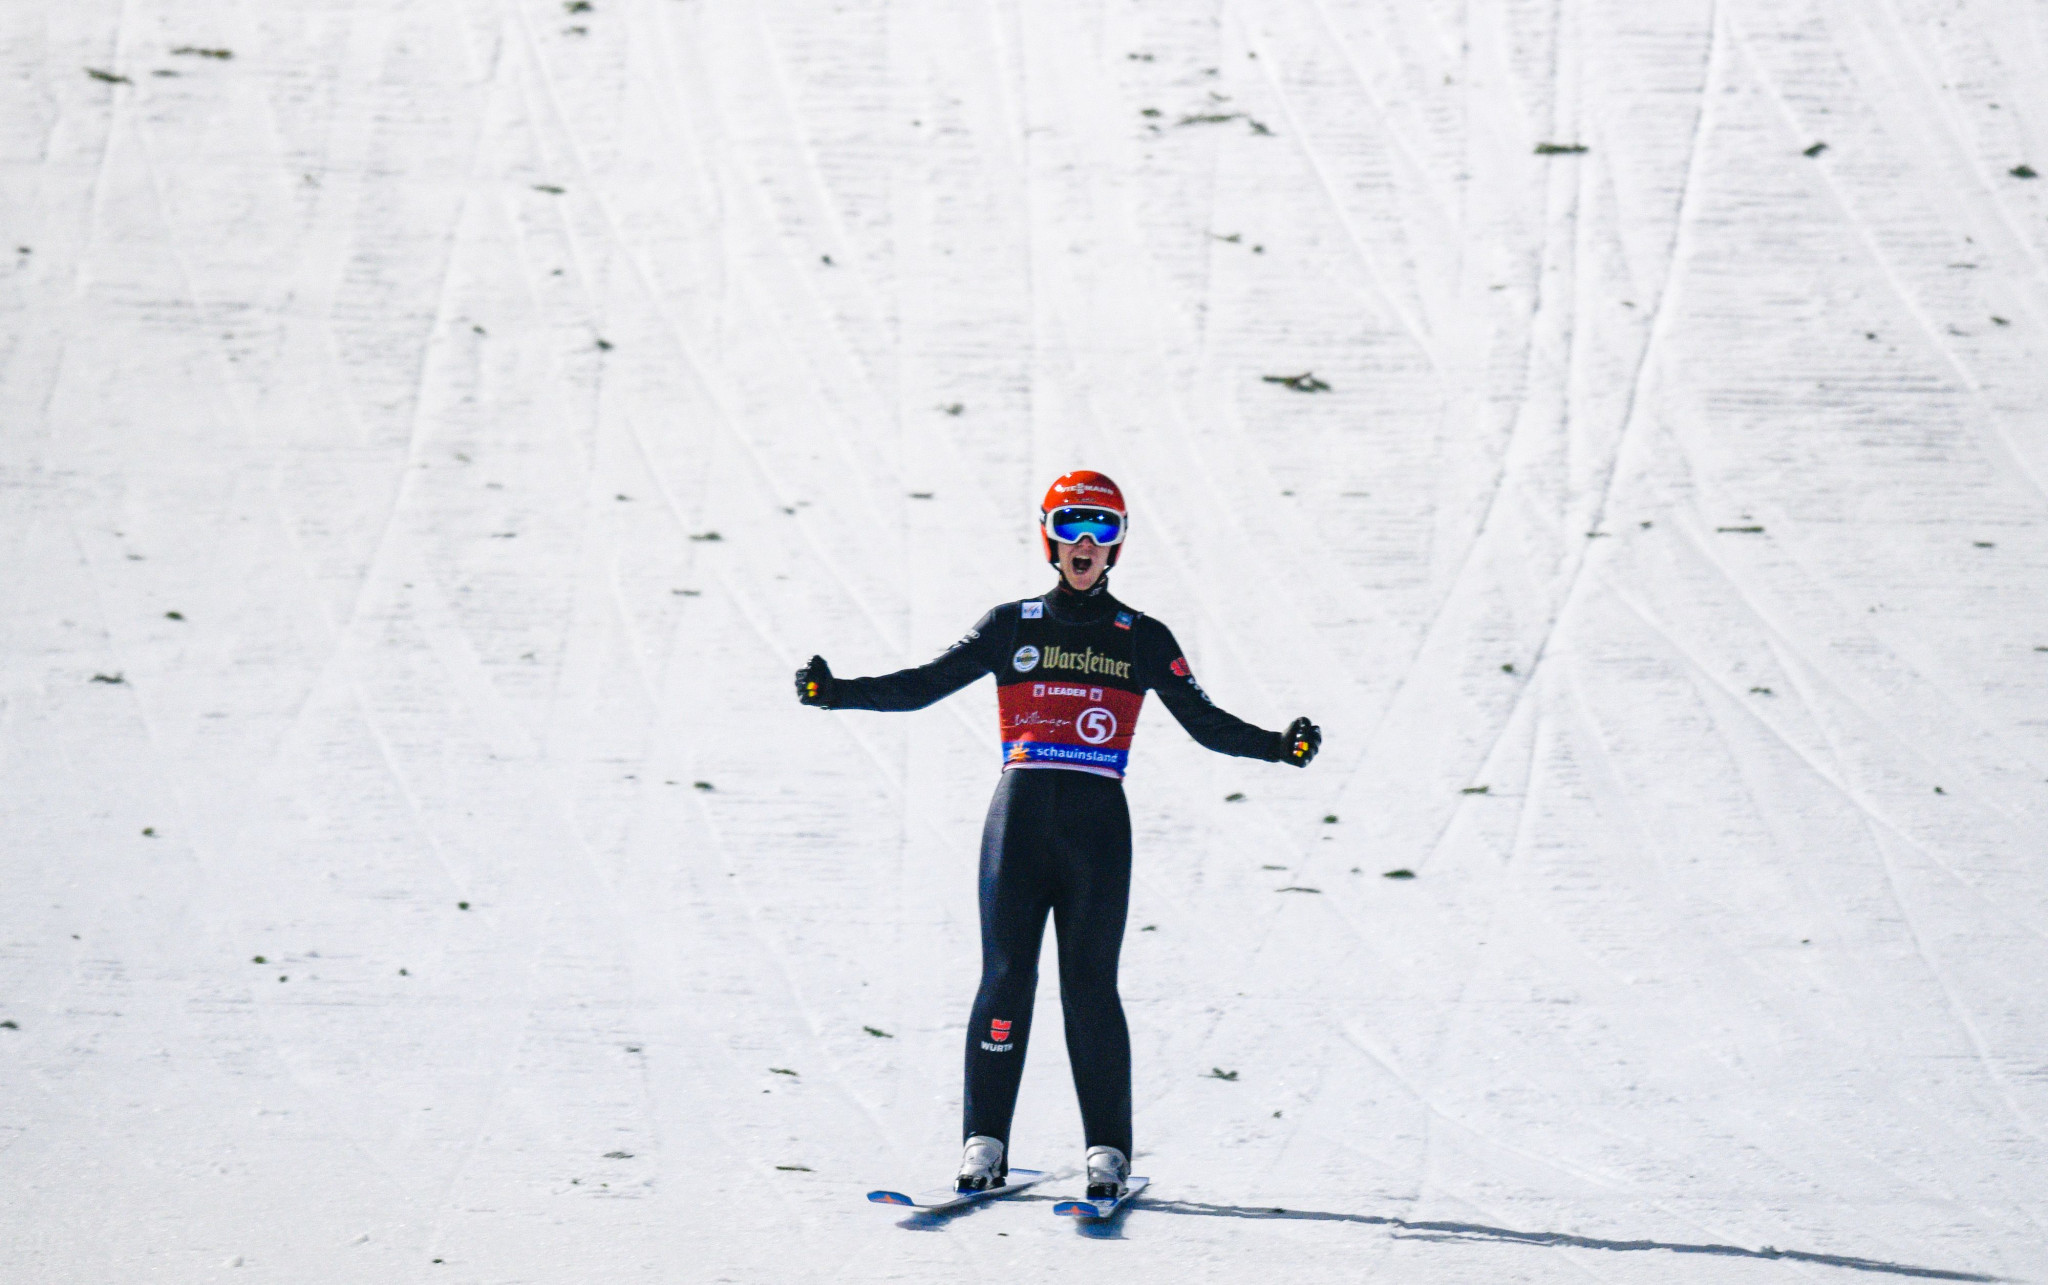 Leyhe records first FIS Ski Jumping World Cup win in Willingen